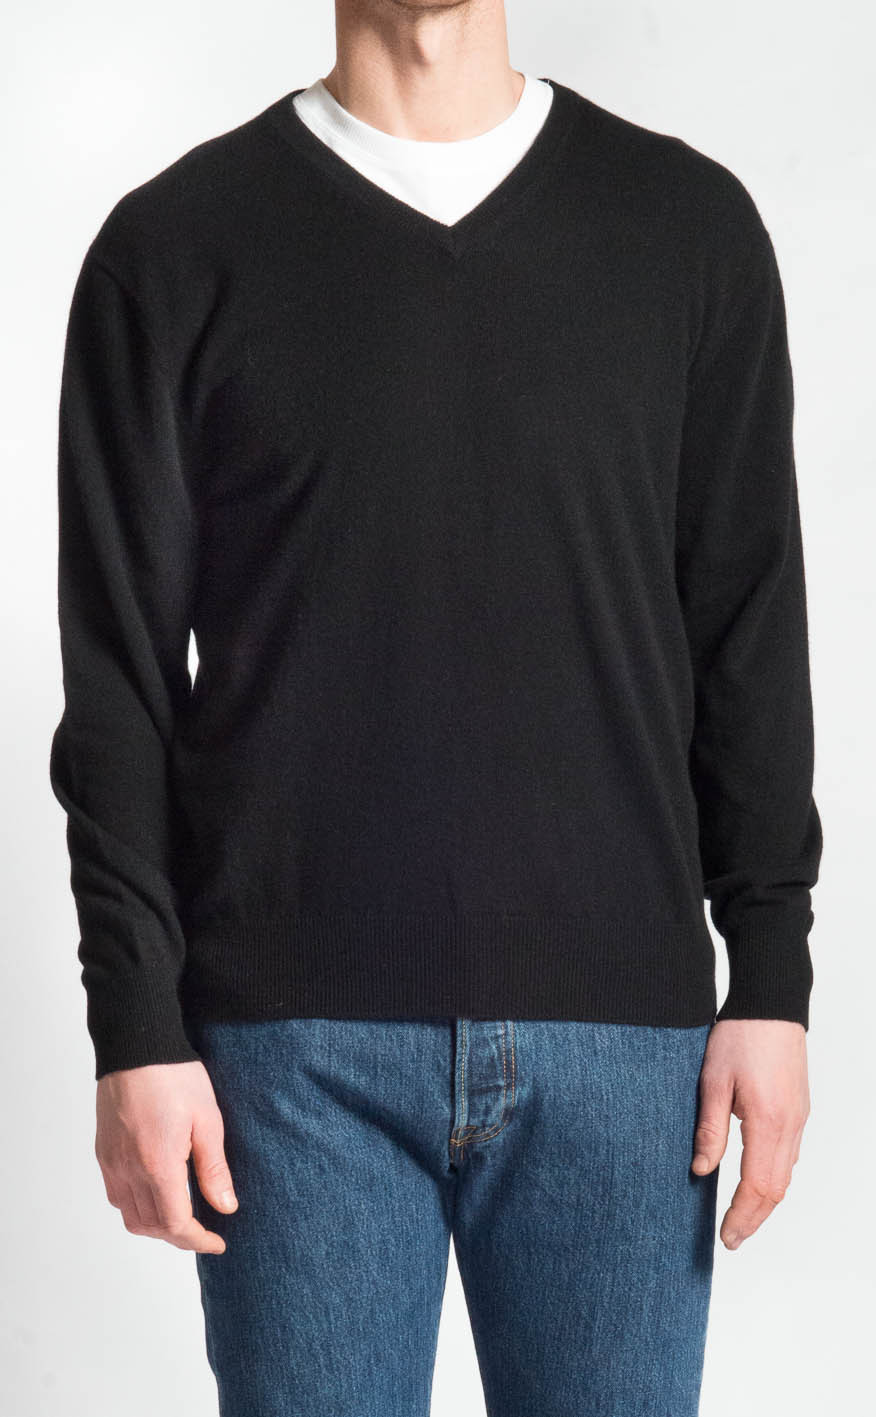 Cashmere V Neck Sweater | CLAN by Scotweb